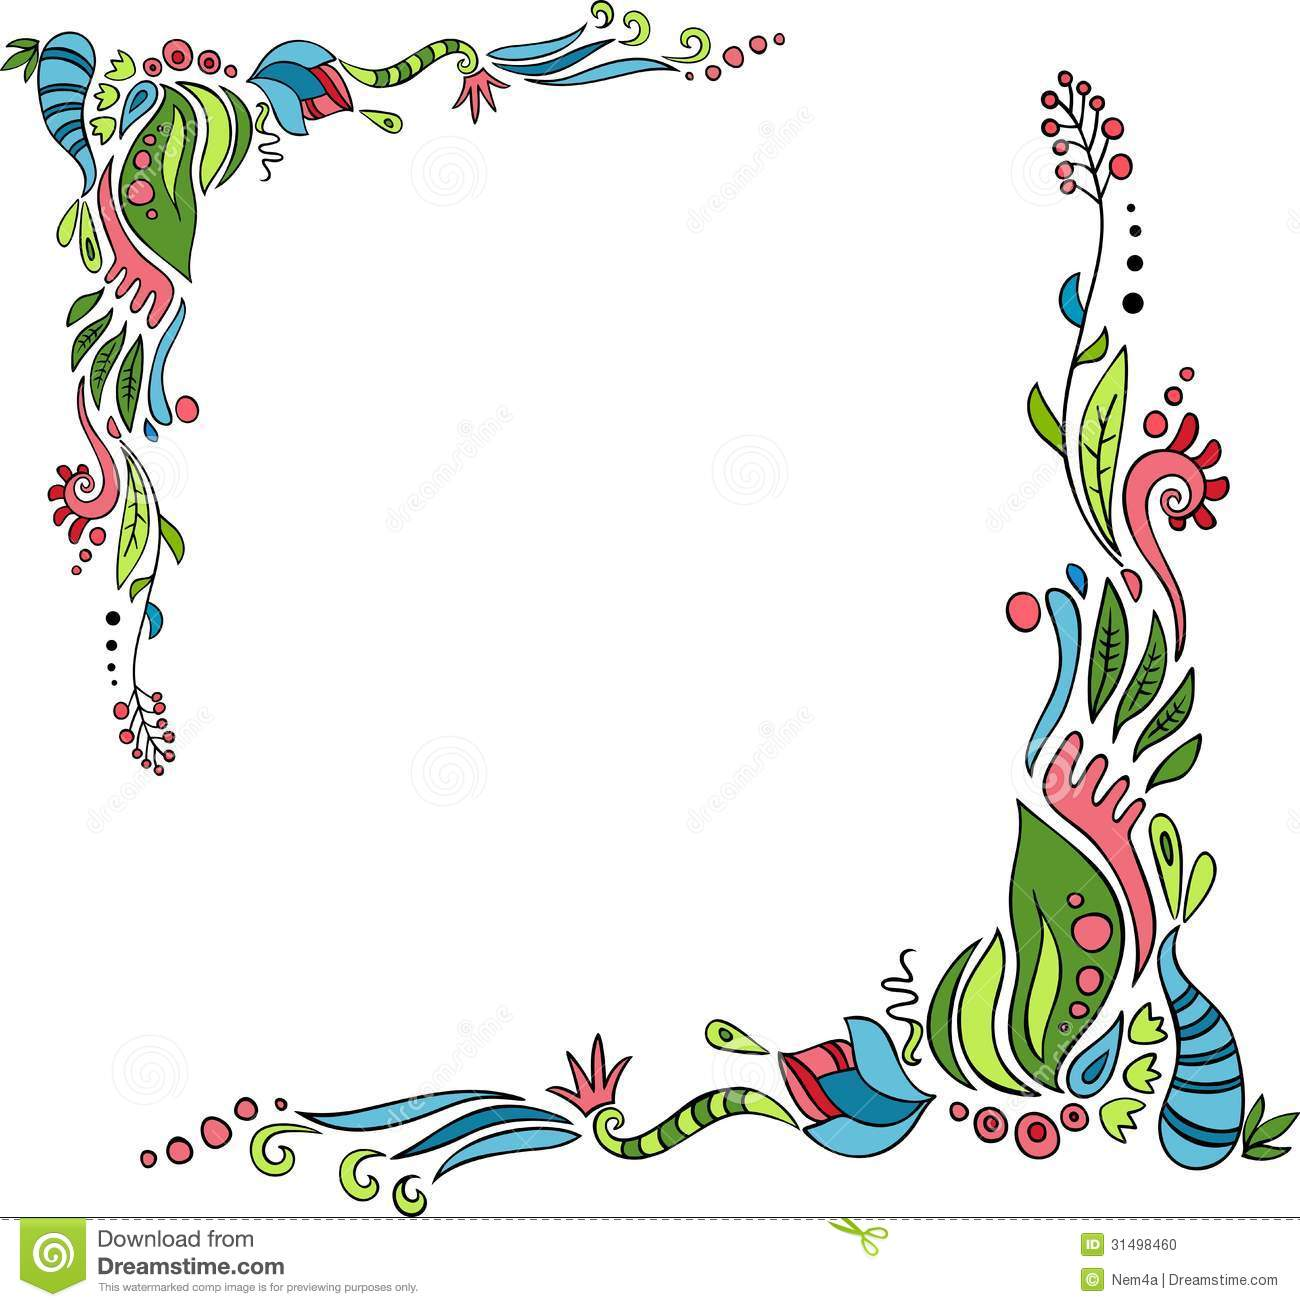 Frame Design Line Art : Floral frame stock vector illustration of color blossom